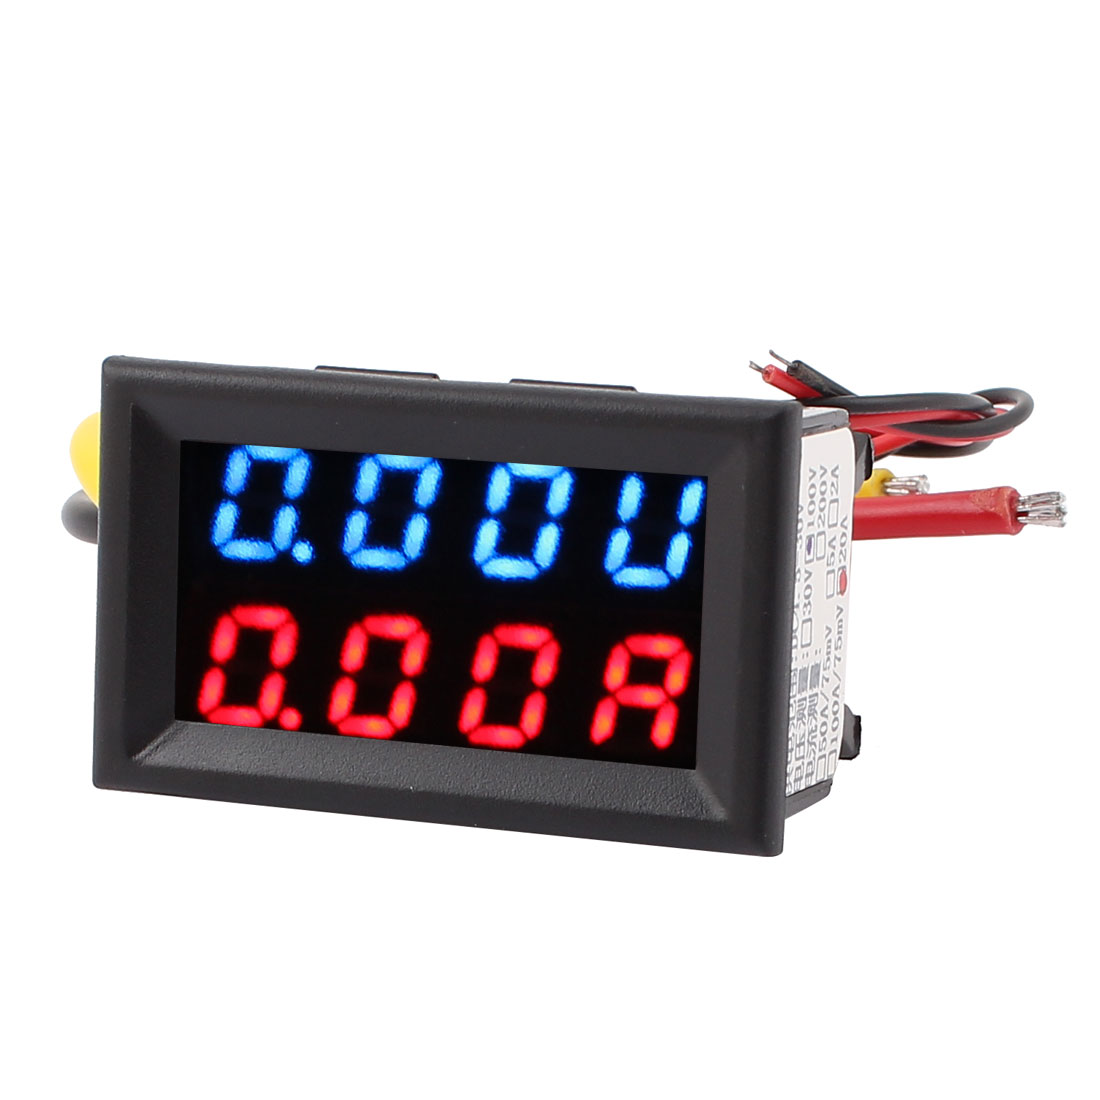 DC 0-100V 0-20A Blue Red LED Dual Digital Panel Voltmeter Ammeter Meter Gauge